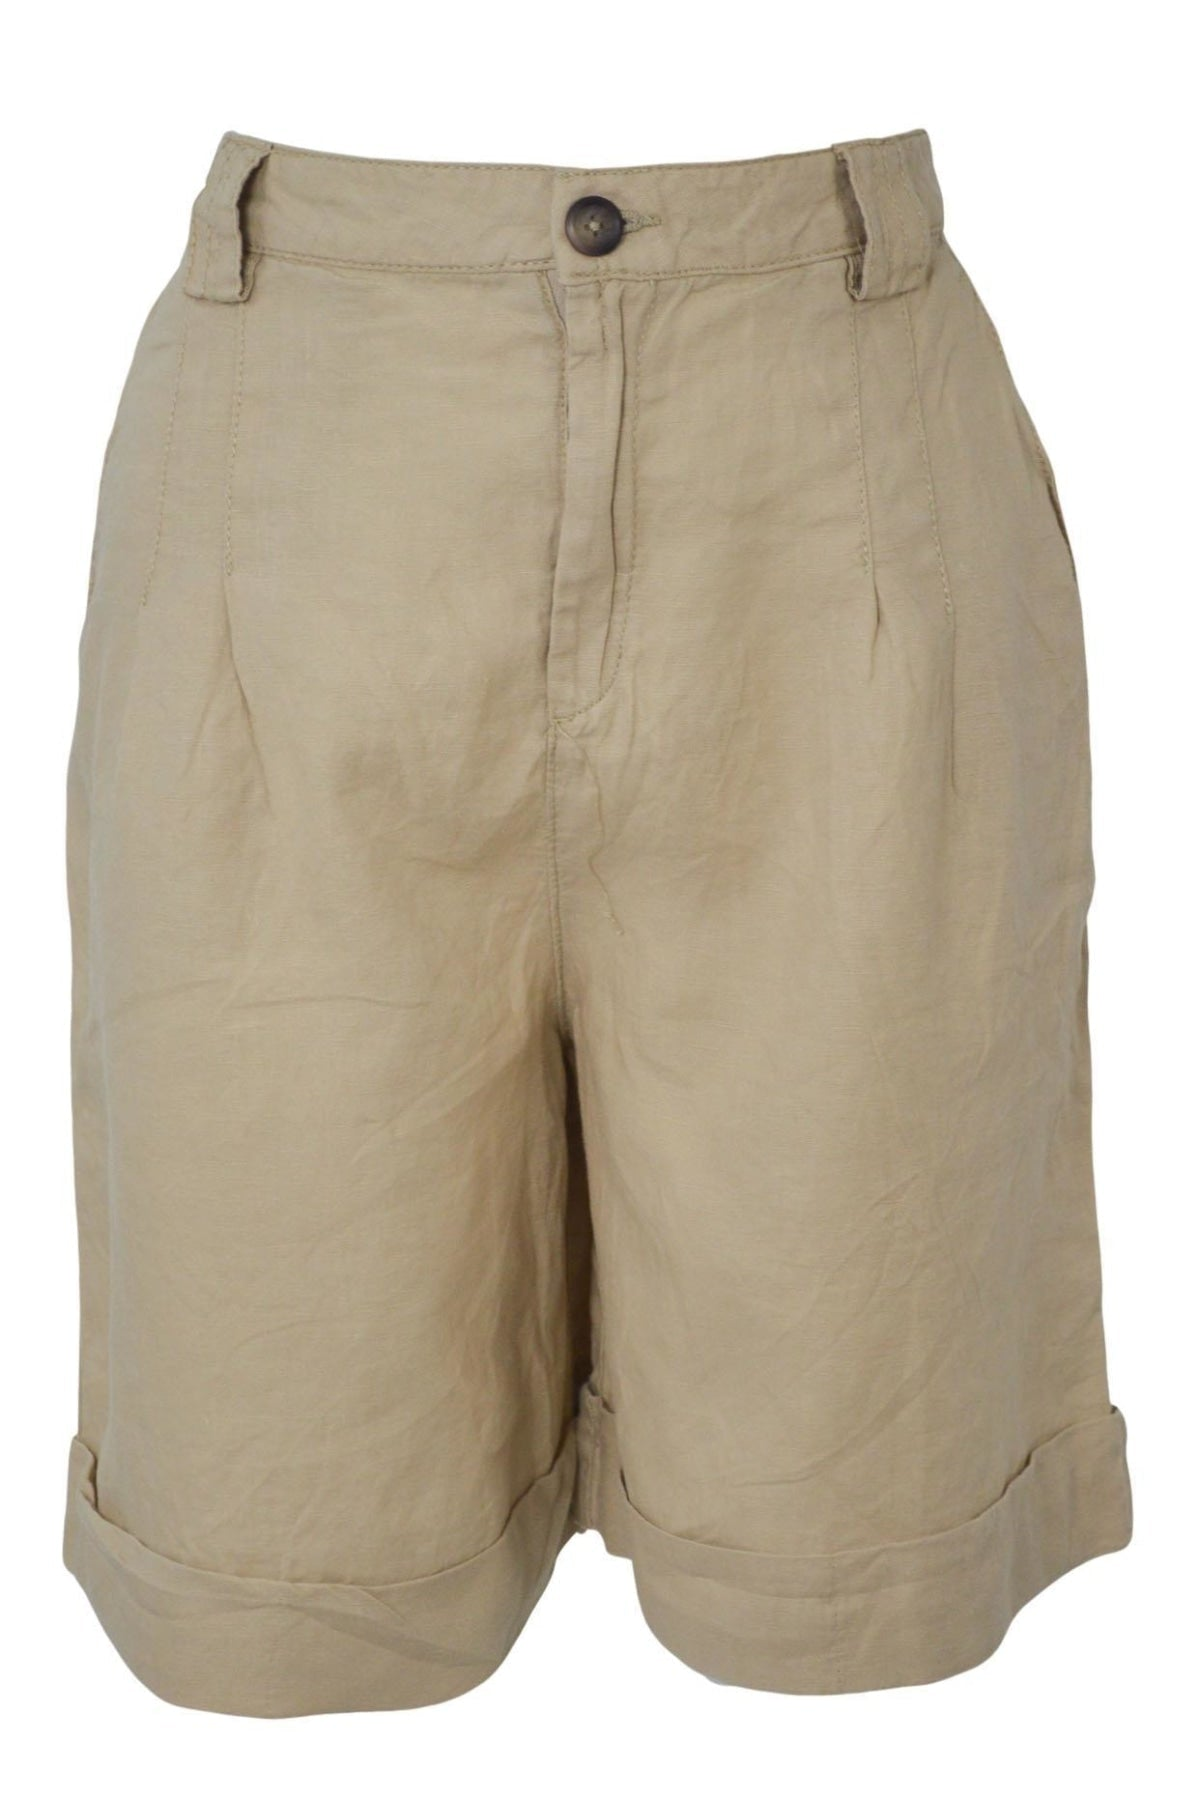 United Colors Of Benetton Cotton Bermuda Shorts | 16 / Beige Secret Label